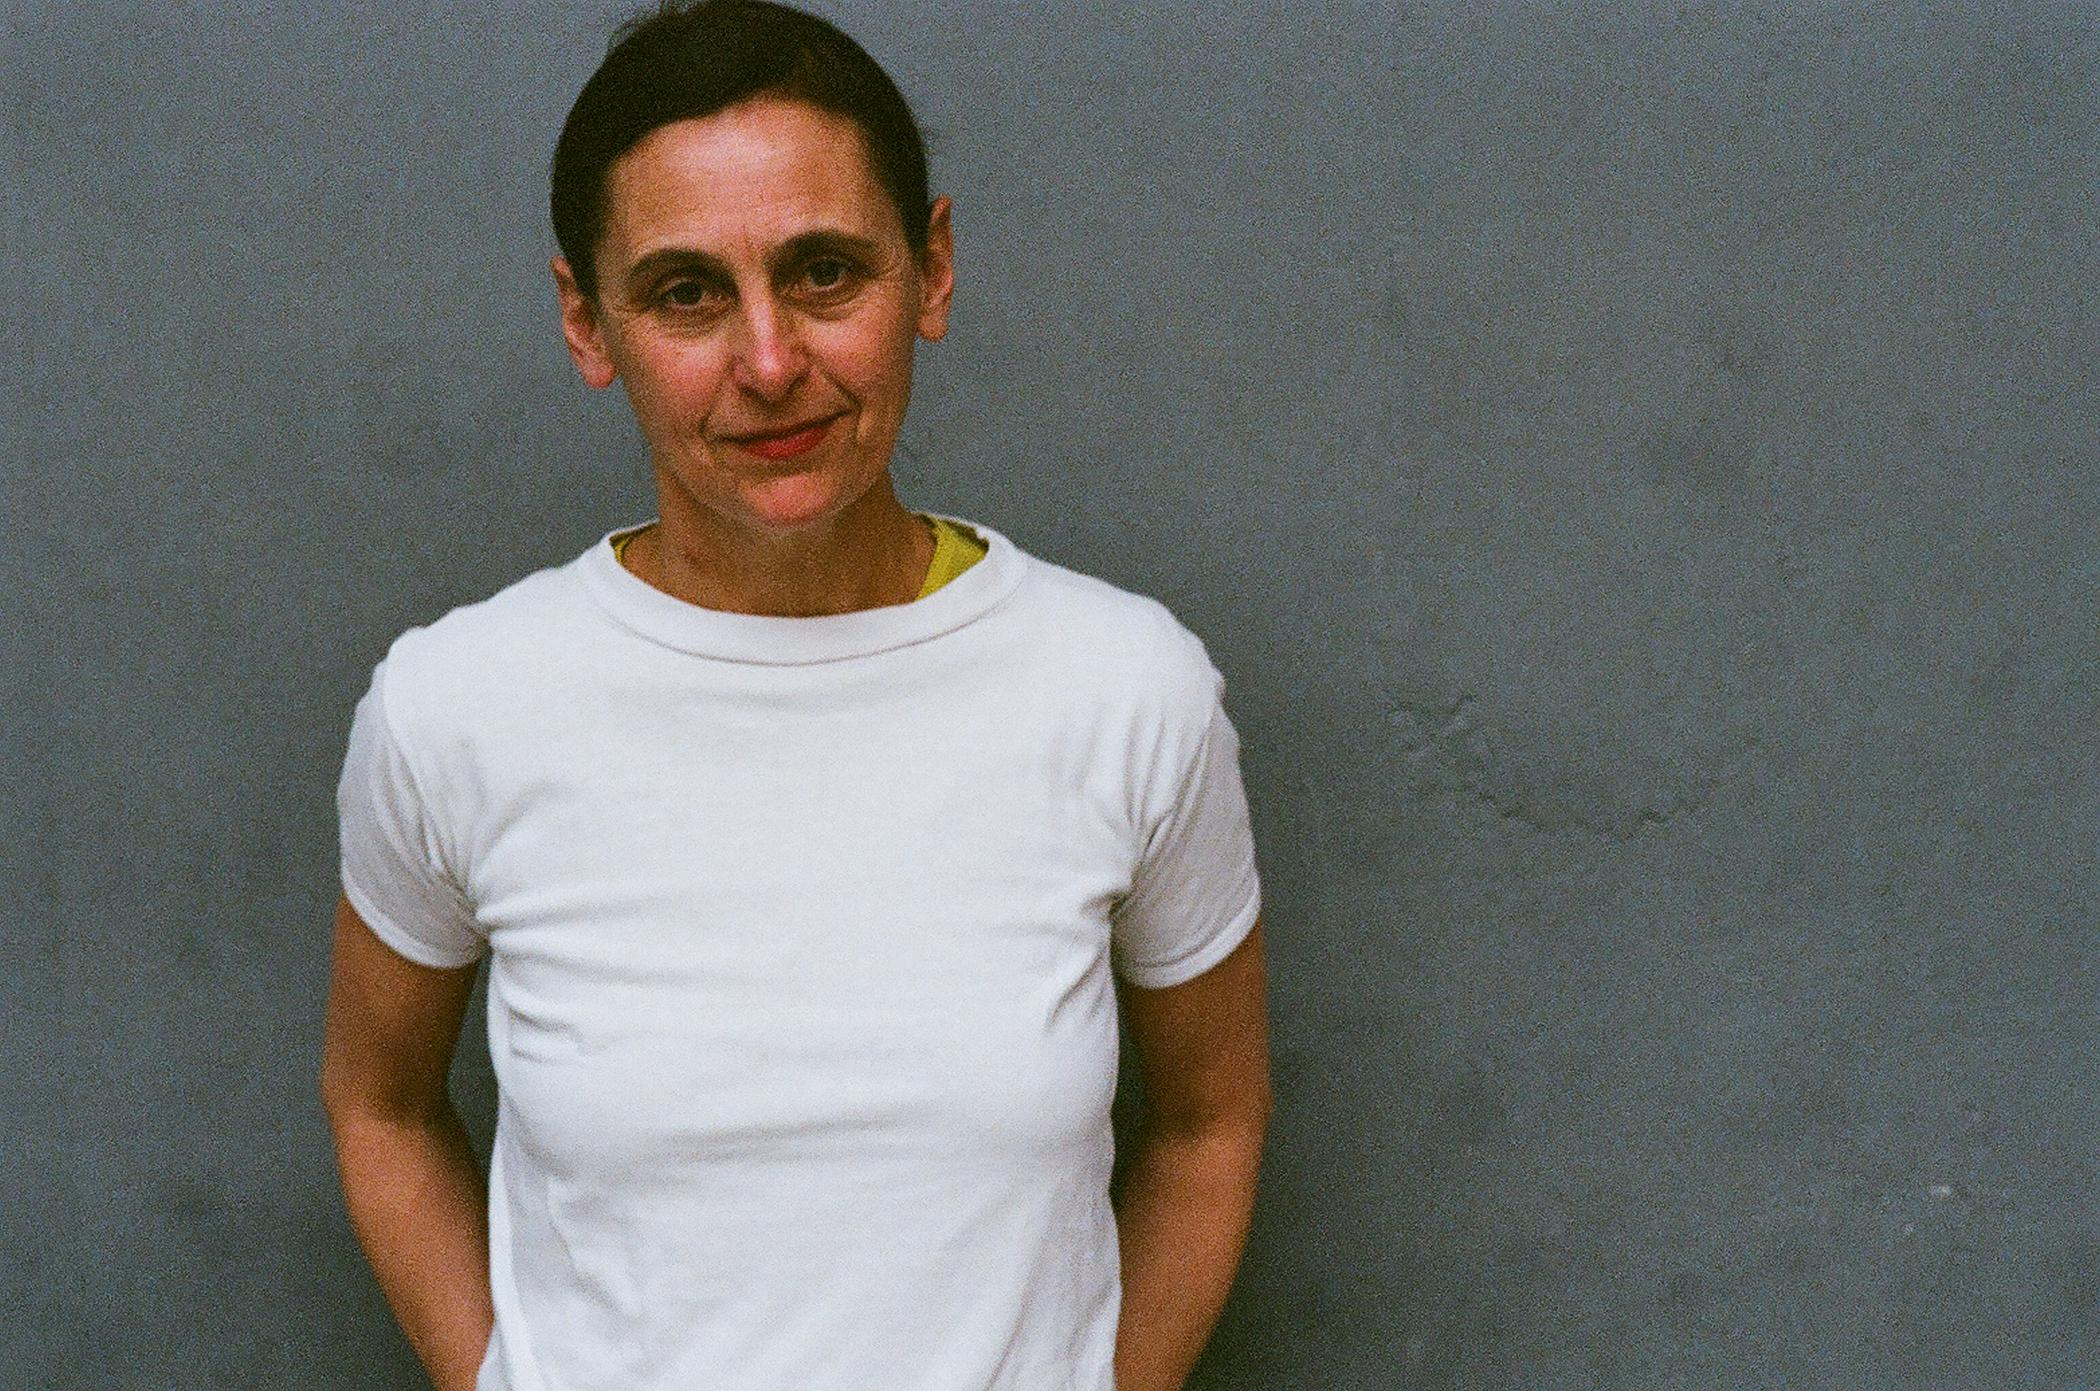 A person with short, dark hair wears a white tee shirt and regards the viewer calmly while standing before a medium-gray wall.